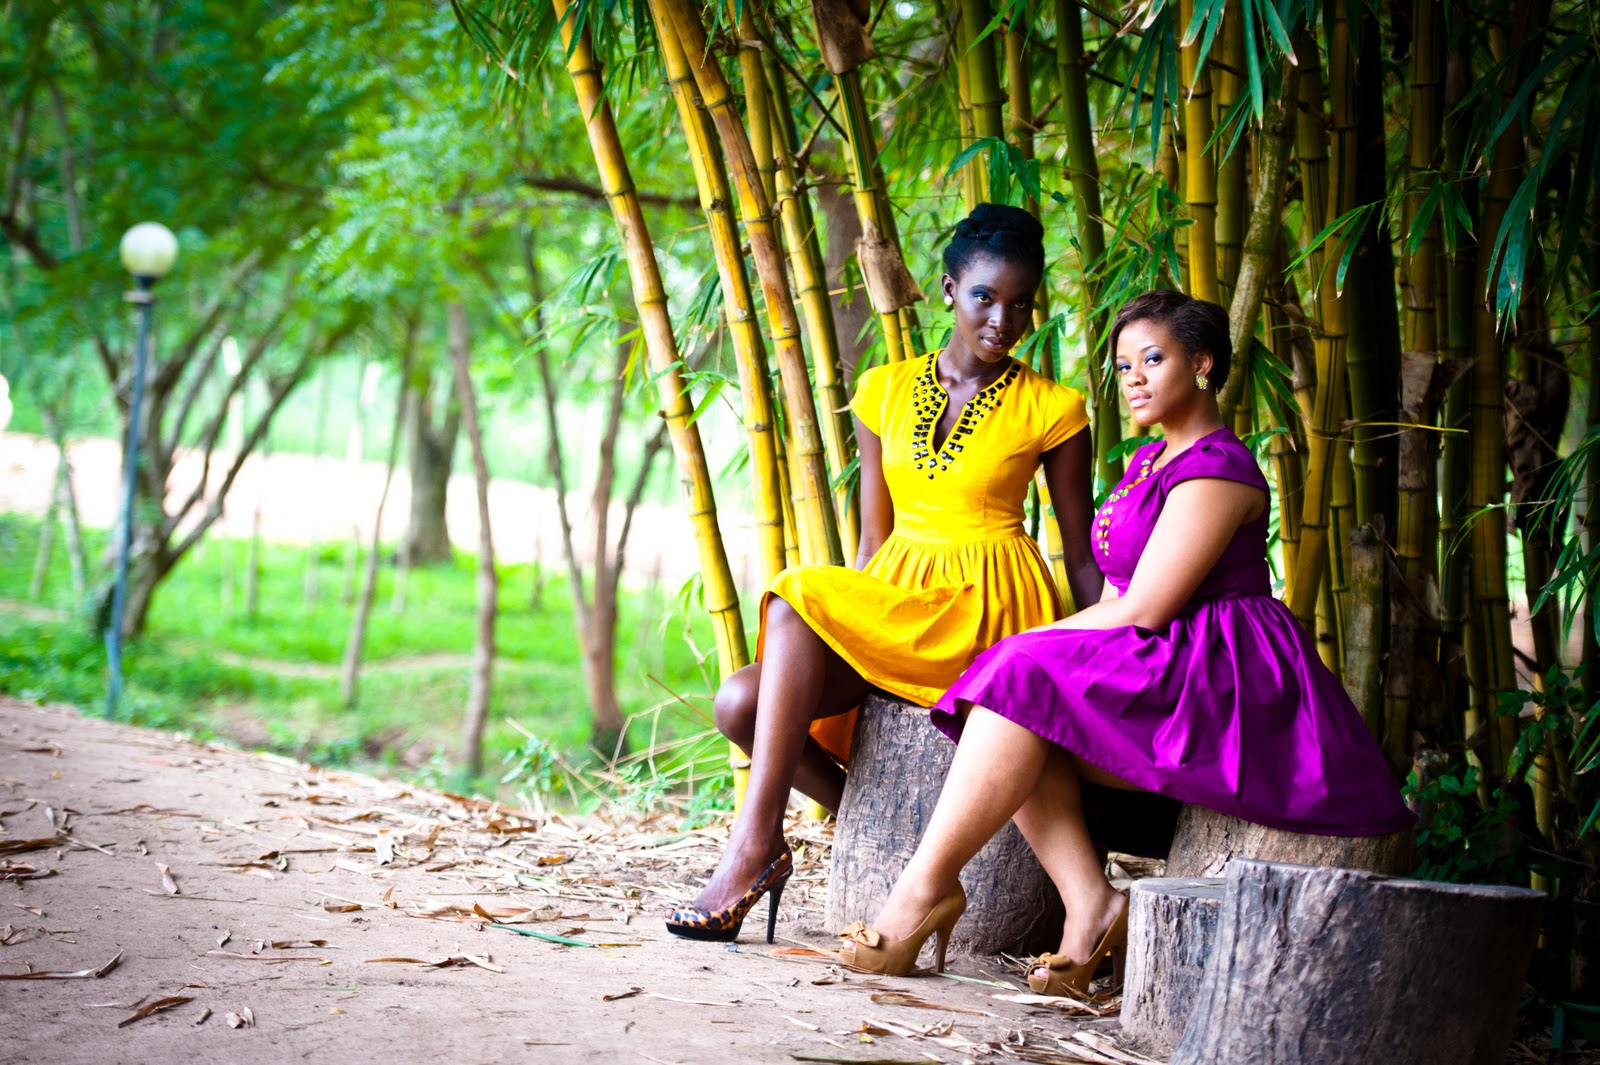 ciaafrique style inspiration mina evans wedding magazines wedding magazines in Ghana Dream Magazine shot a few pieces of her new collection which will be released next month In the meantime enjoy the pics